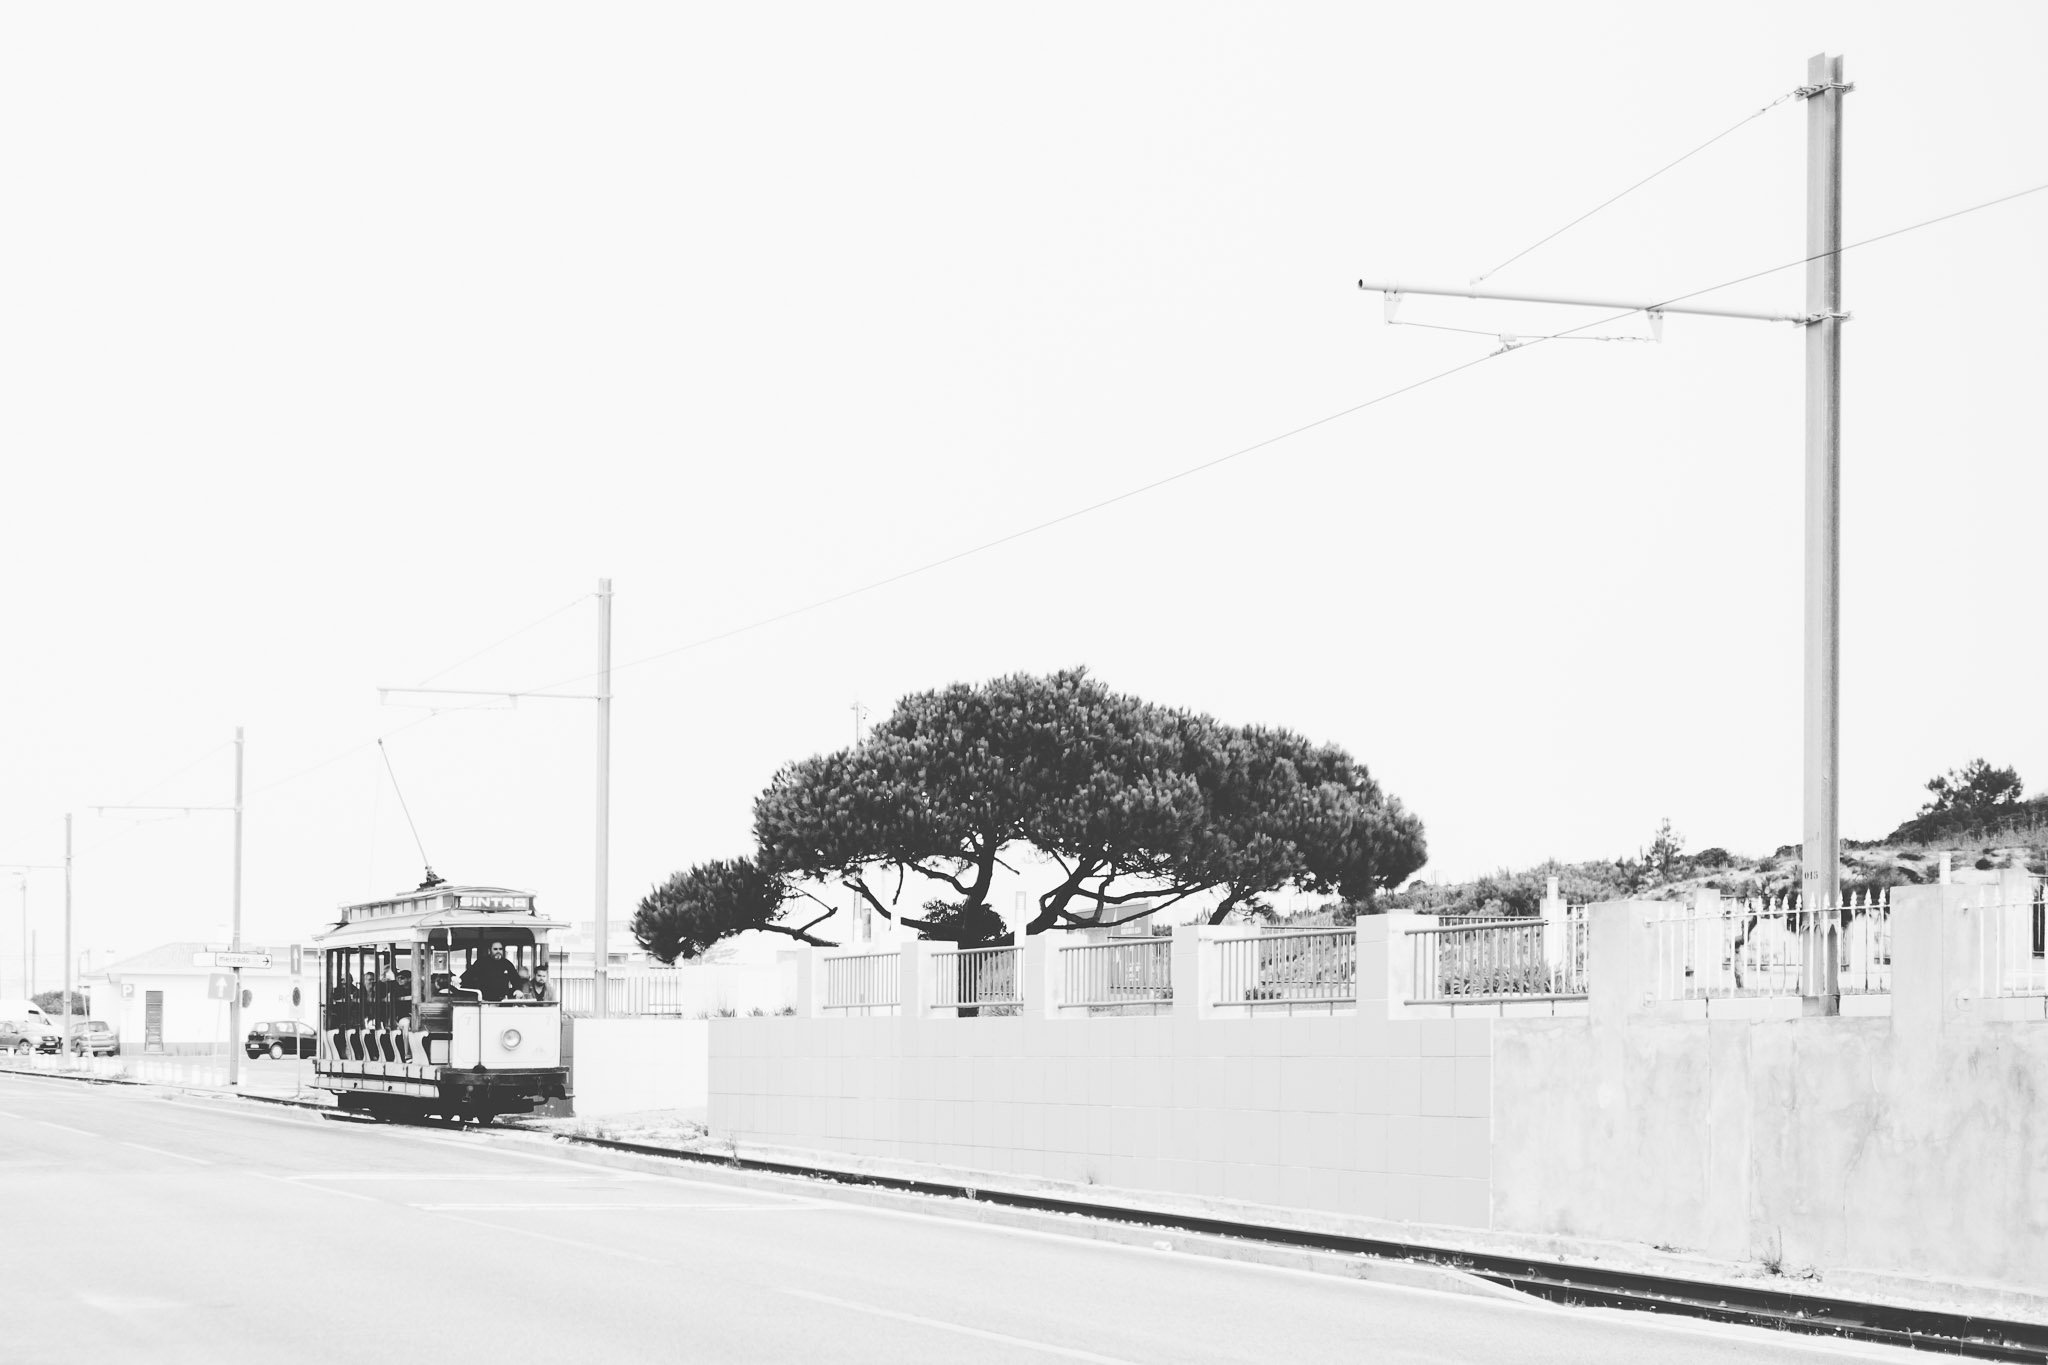 Sintra tram at Praia das Maçãs (Apple Beach) Street photography